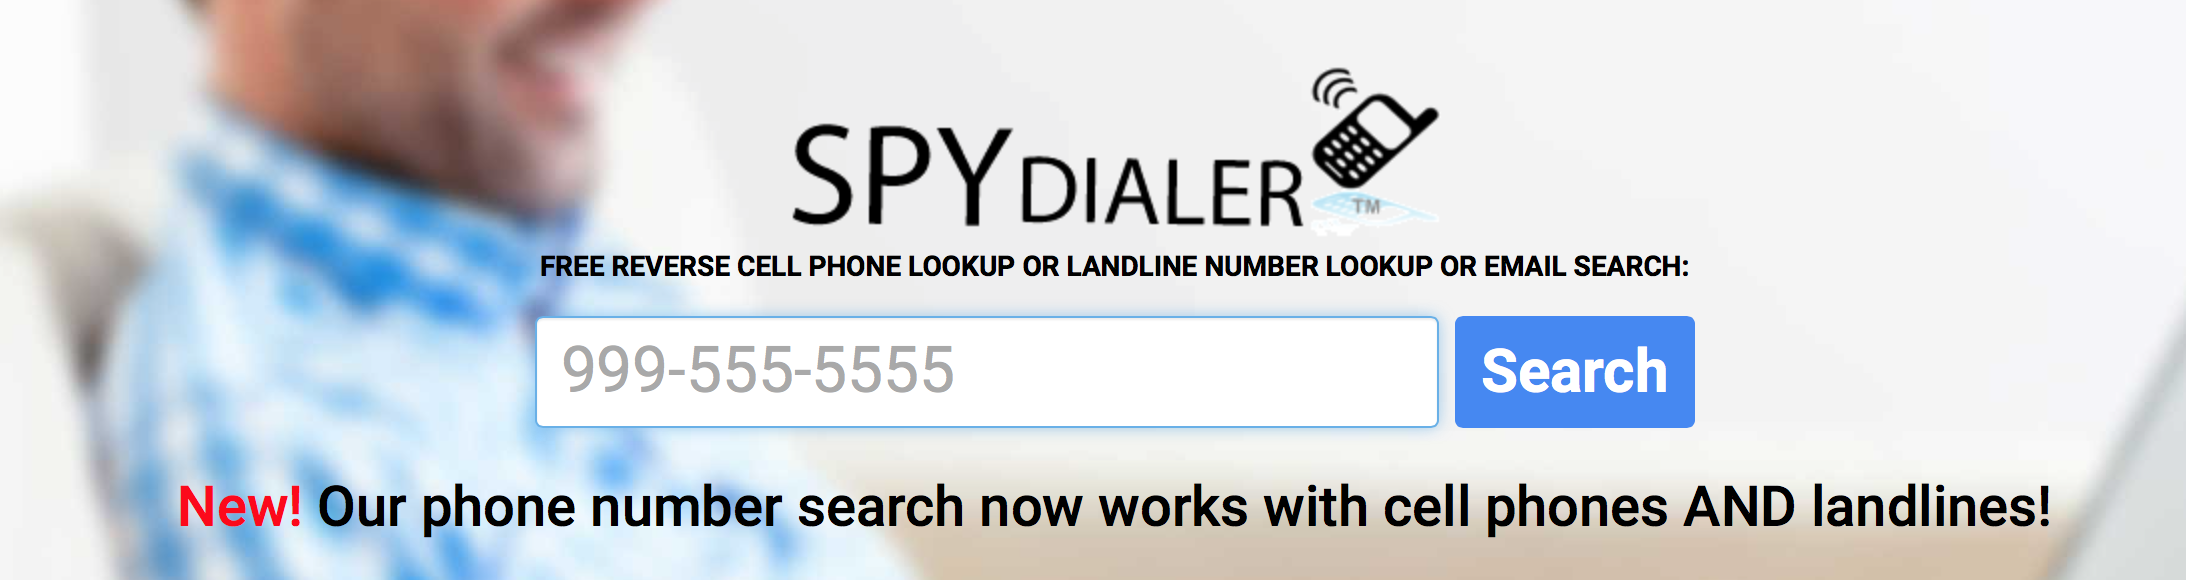 Using Spydialer to Reverse Lookup a Phone Number (2016)  Best Free Phone Number Lookup